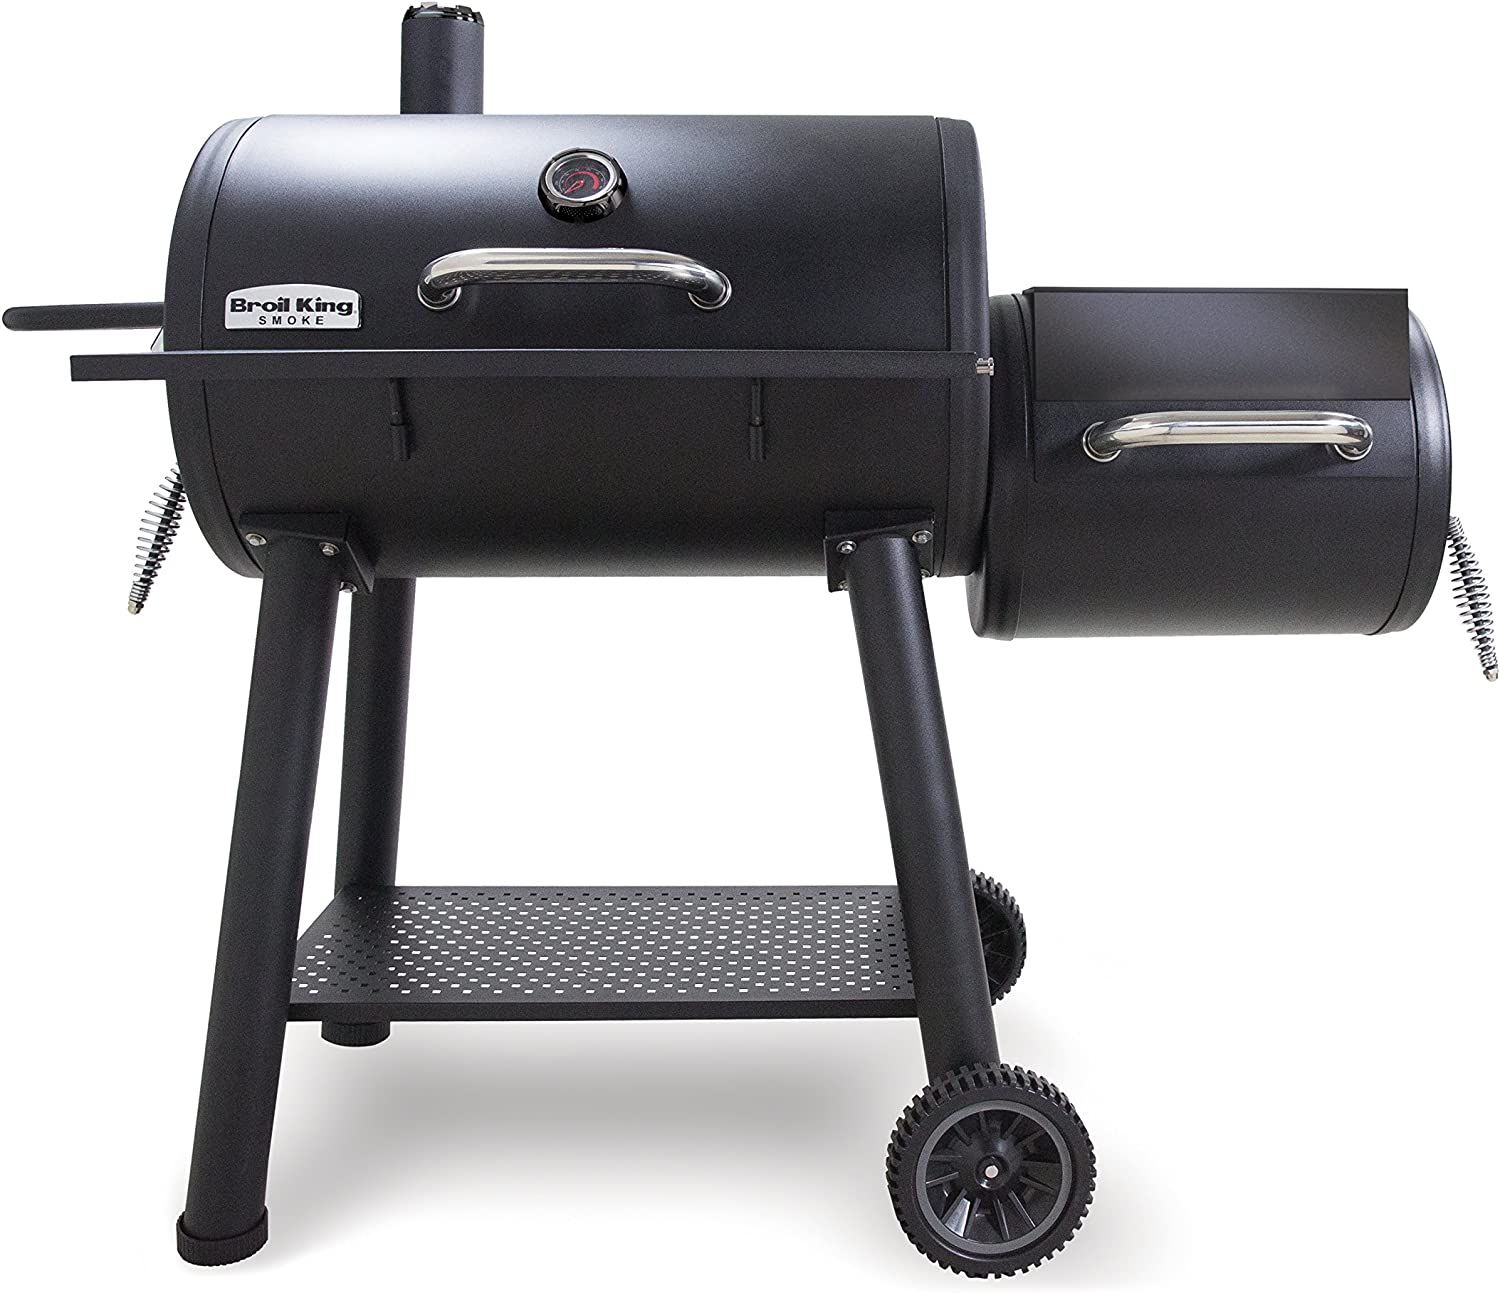 Broil King 958050 Offset Smoker review